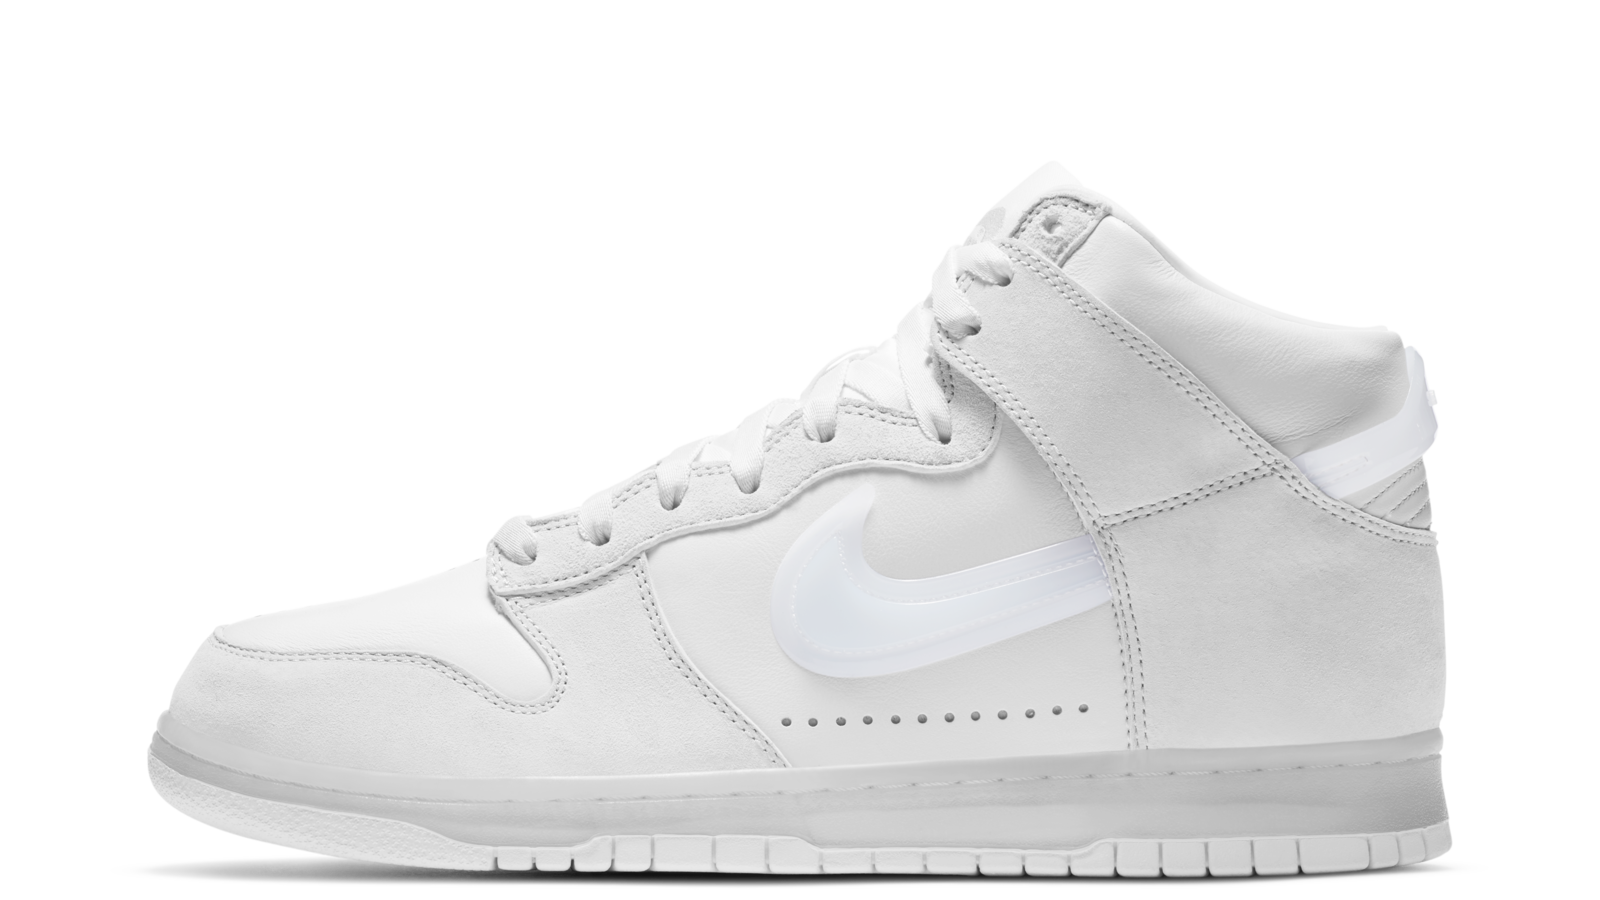 Nike Dunk Slam Jam Release Date and Official Images 3